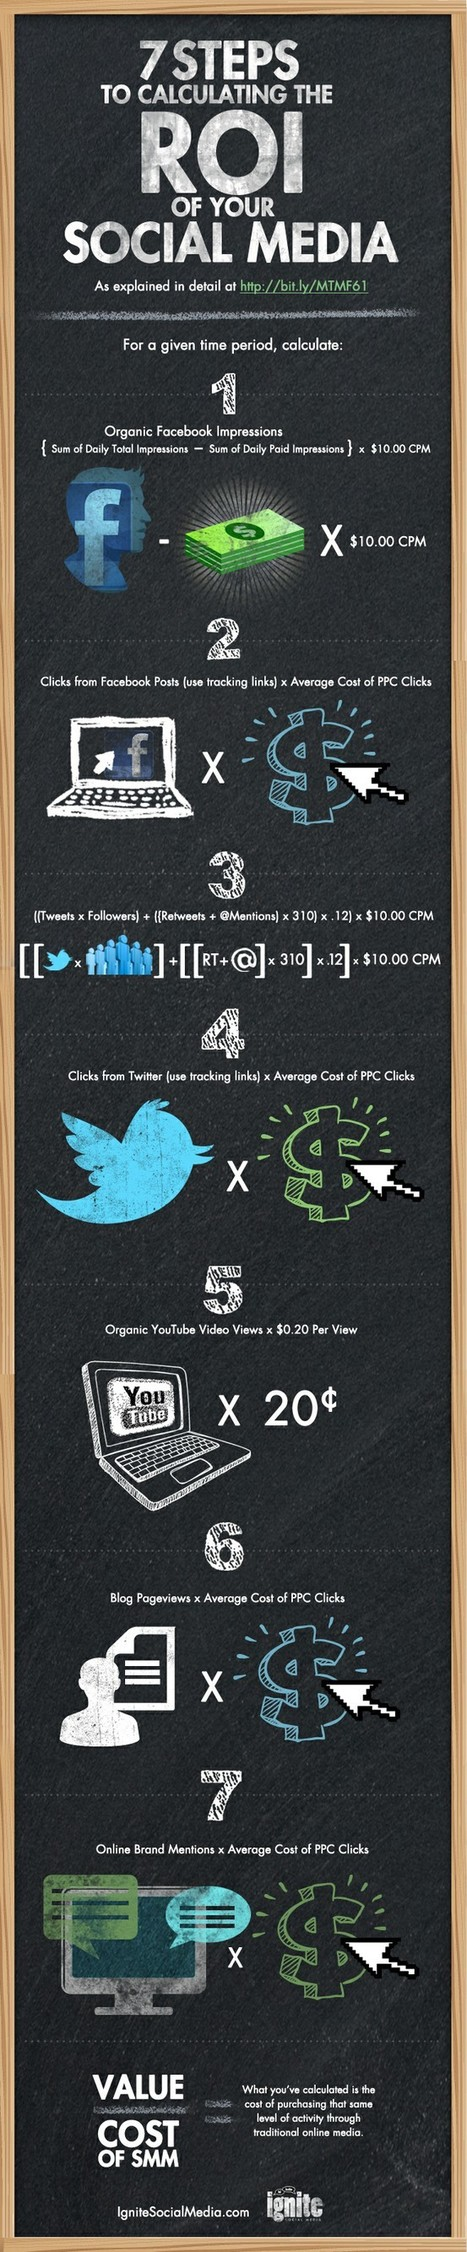 7 Steps to Ignite Your Social Media ROI - Infographic | The Social Media Learning Lab | Scoop.it